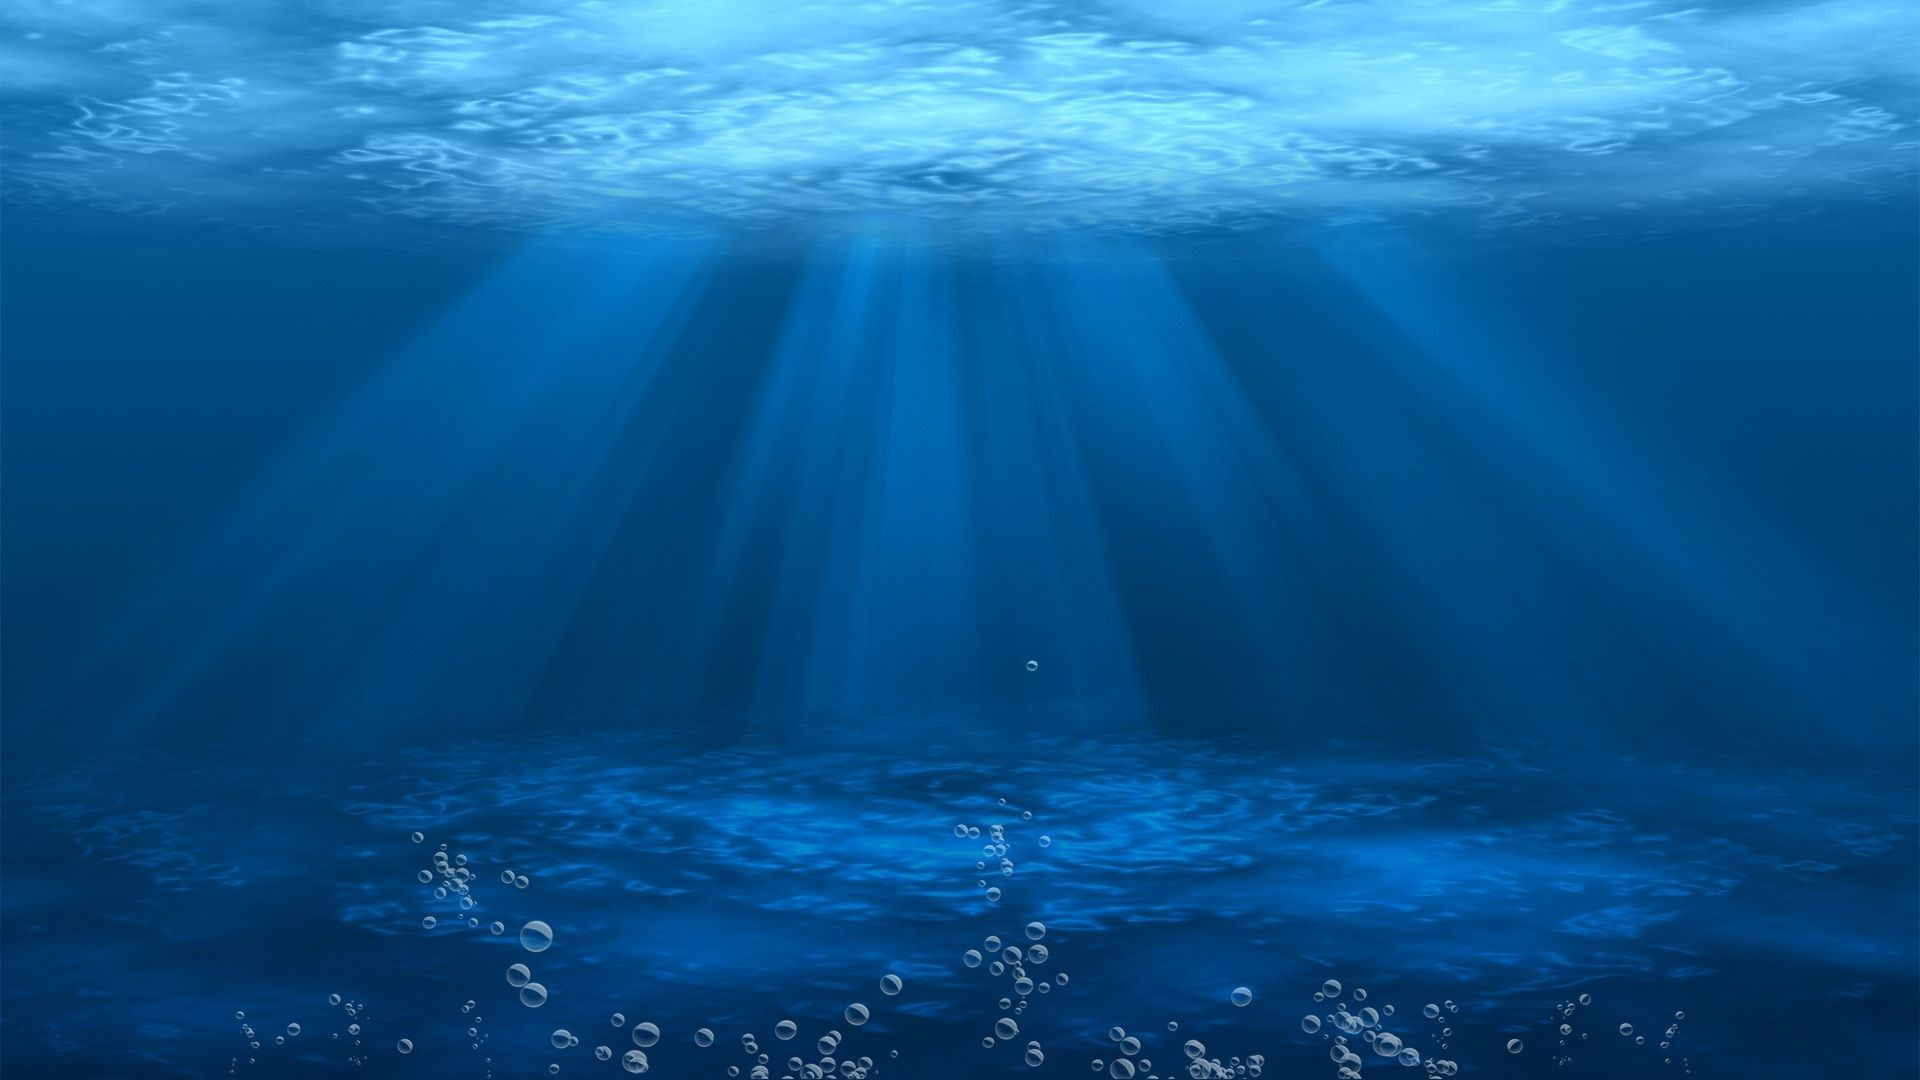 underwater free desktop wallpaper Underwater background